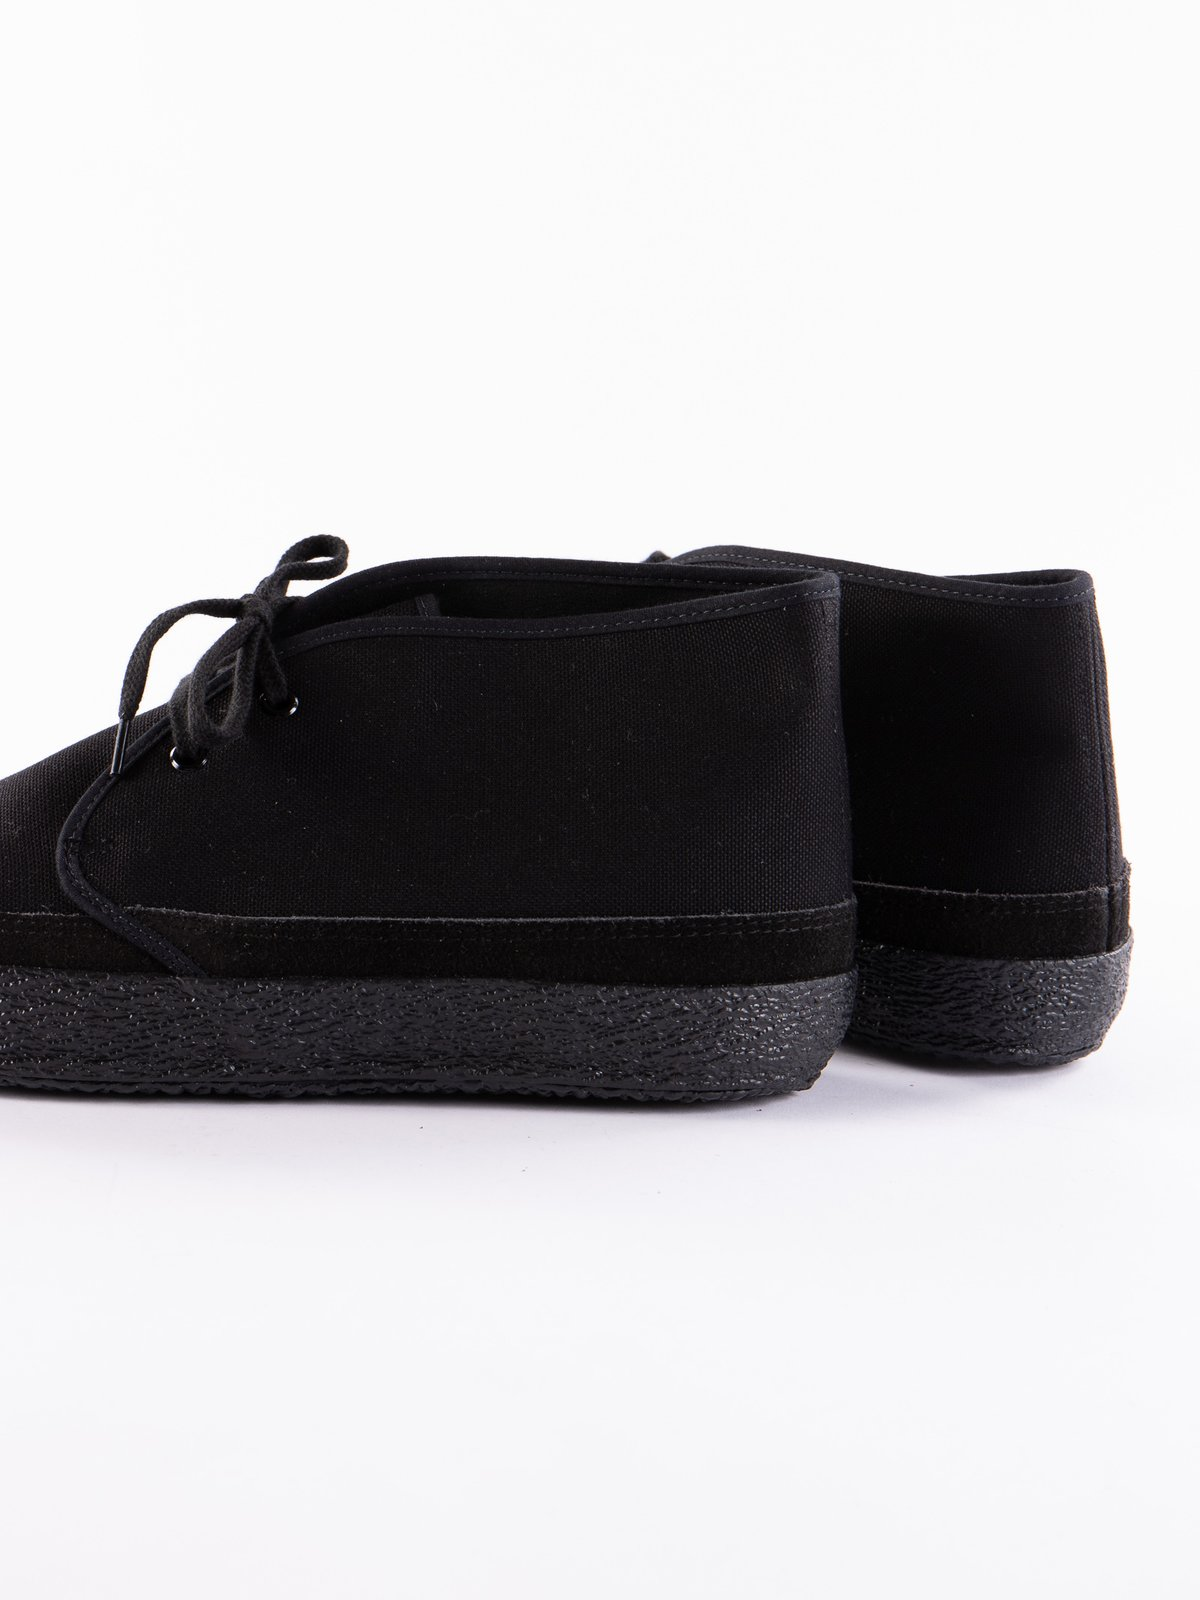 Black Sloth Chukka - Image 4